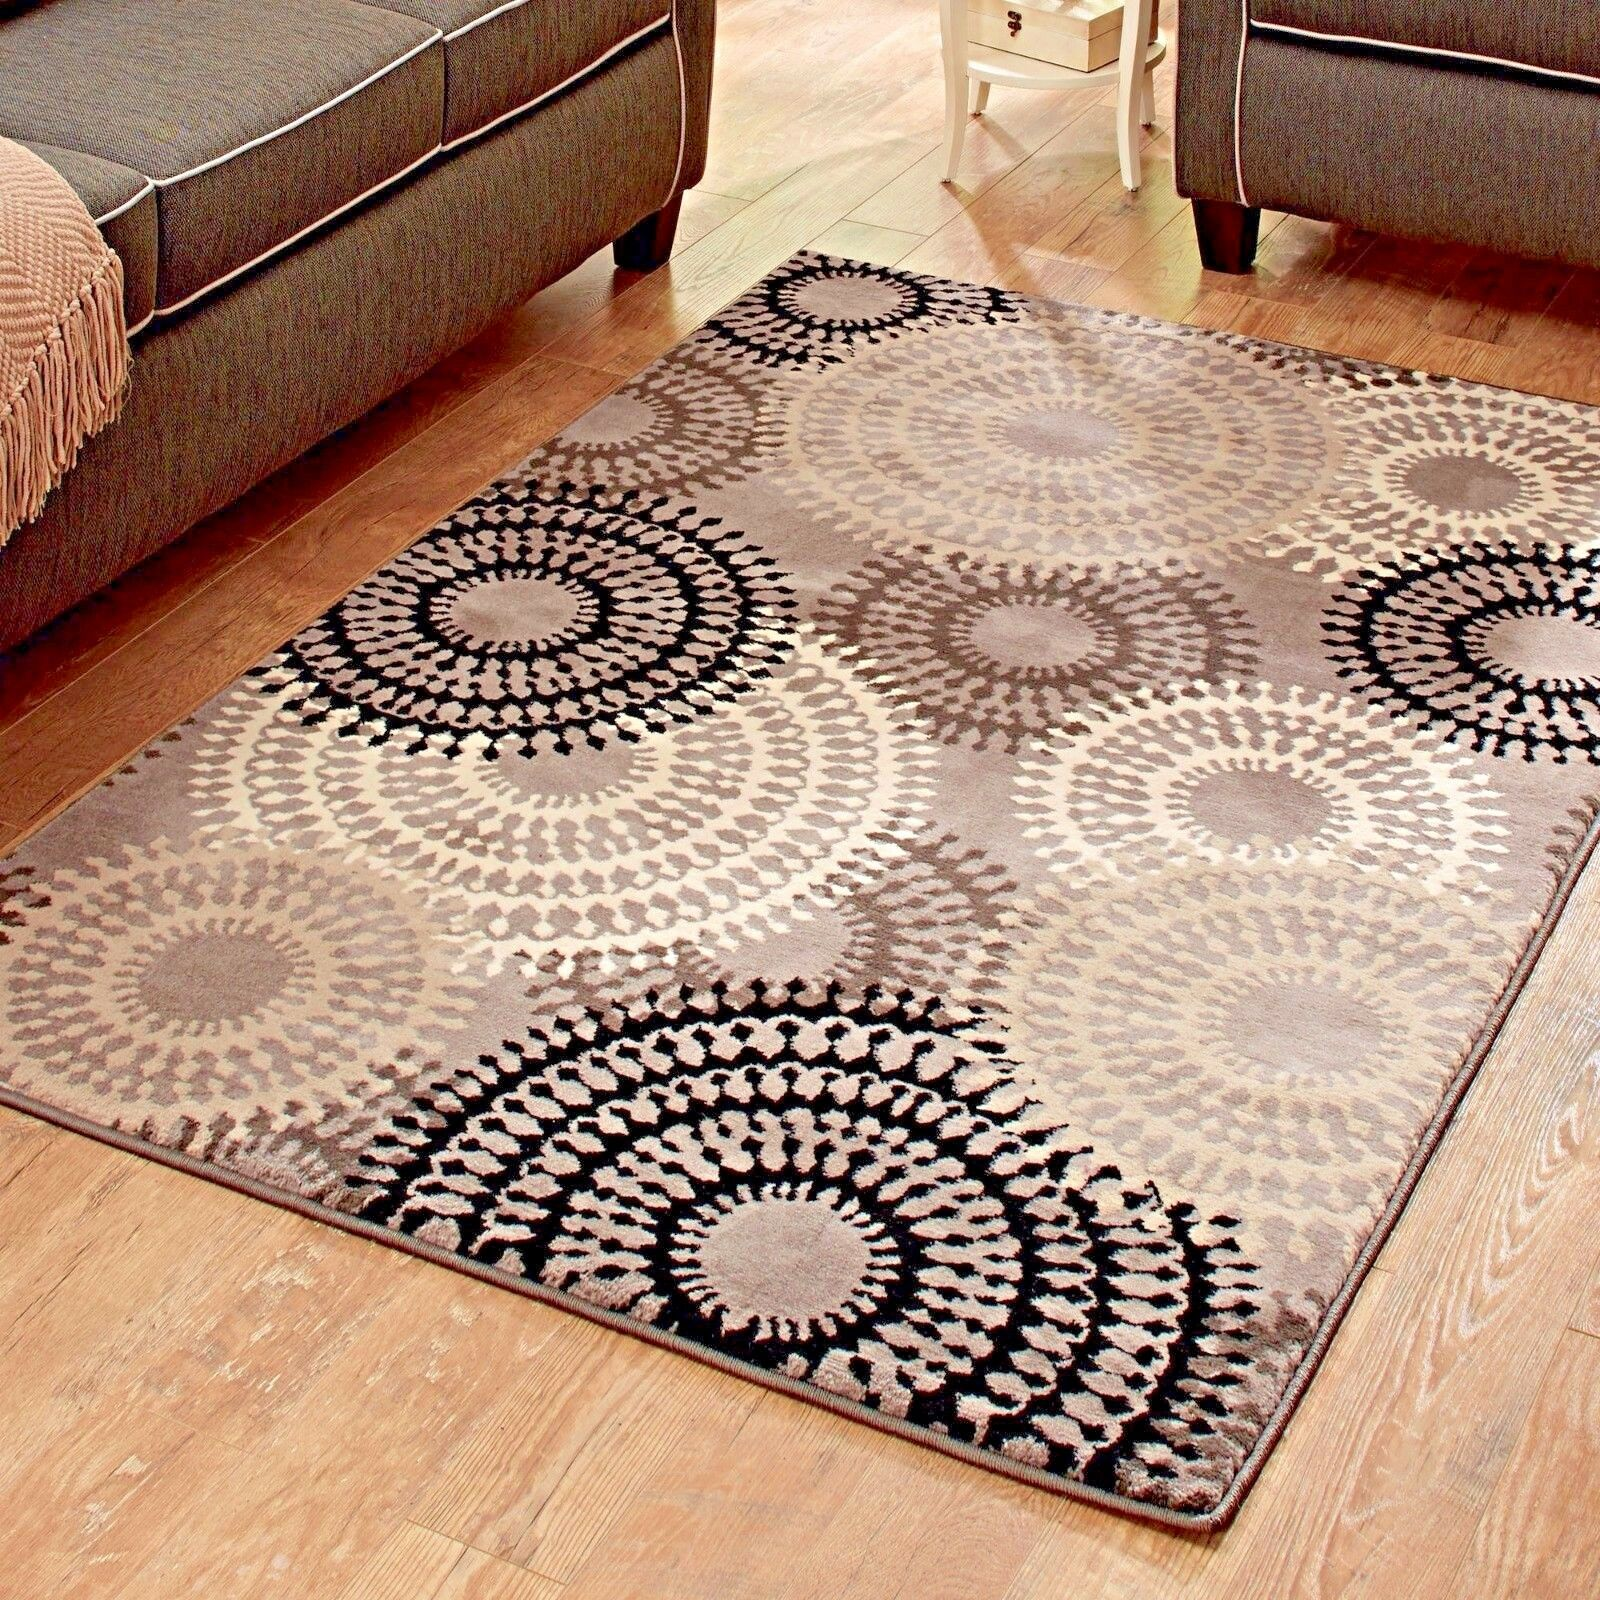 Rugs Area Rugs Carpets 8x10 Rug Big Floor Grey Modern Cute